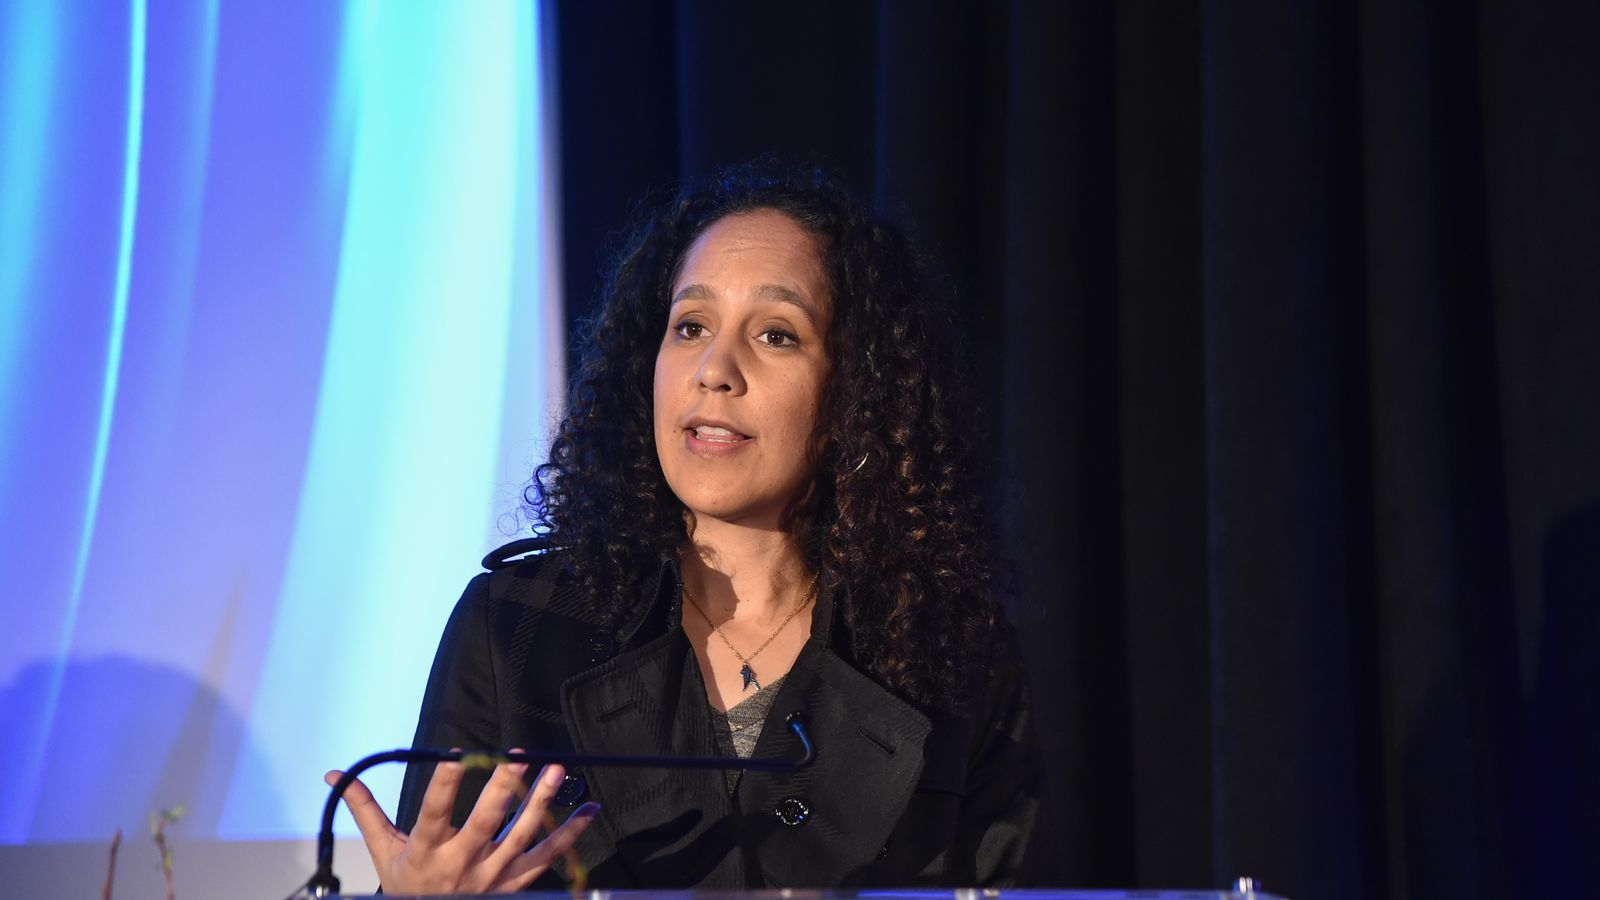 Gina Prince-Bythewood billed as the first woman of color to direct a superhero movie